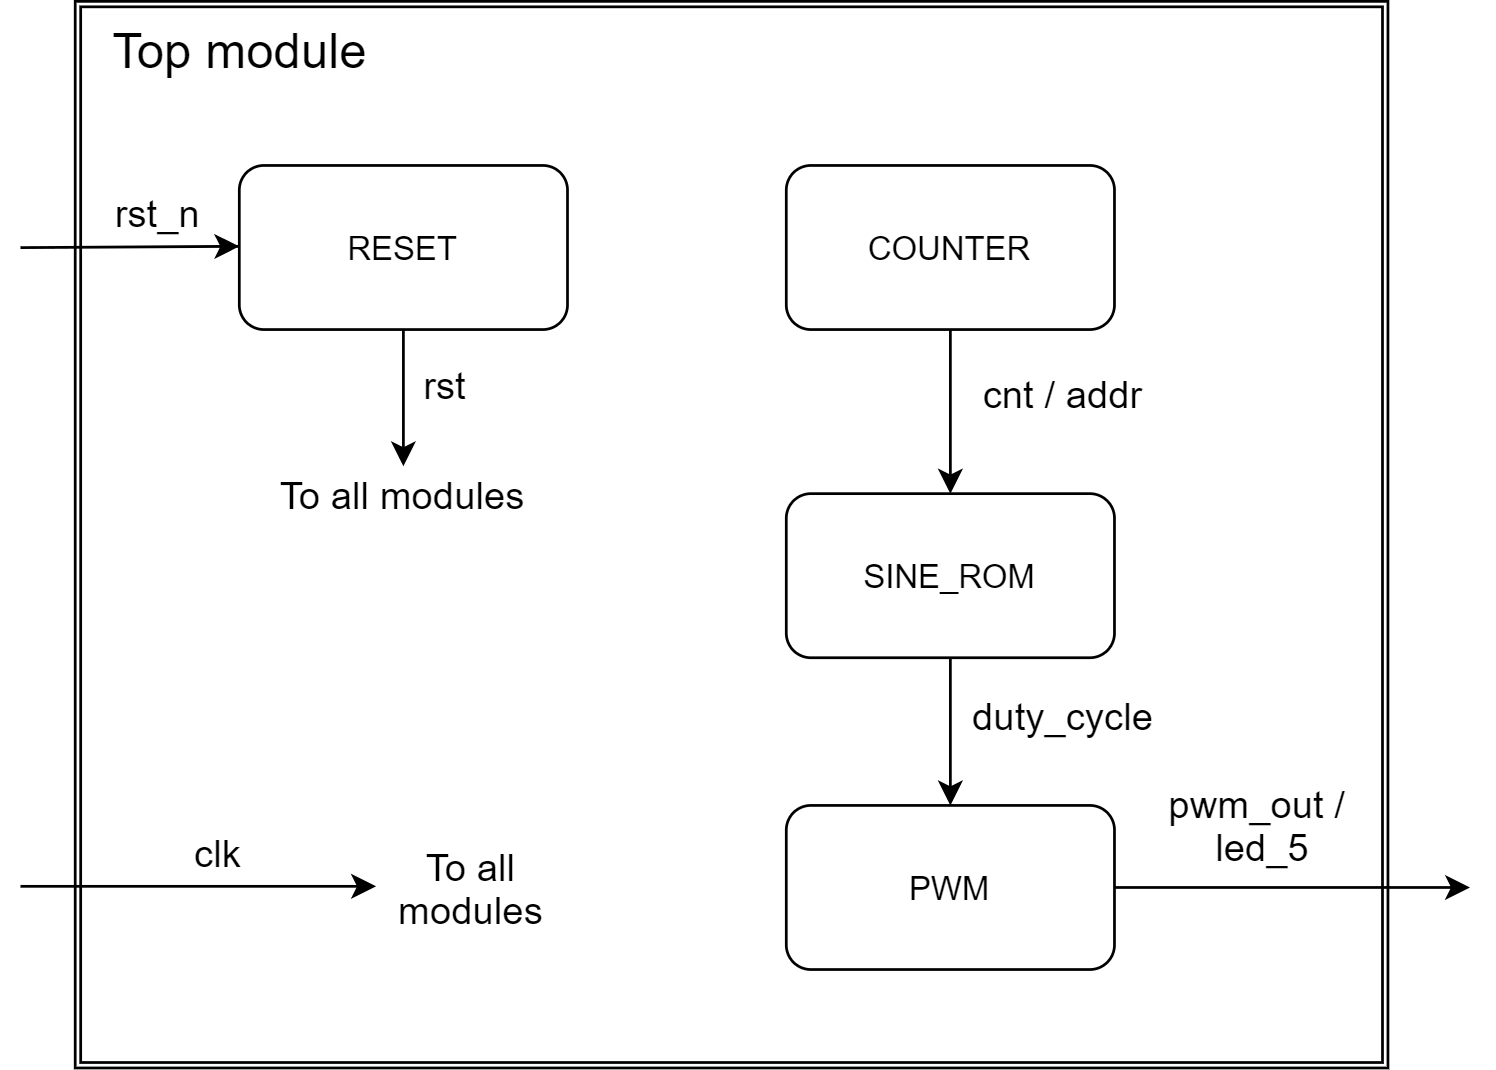 Data flow chart of the top module